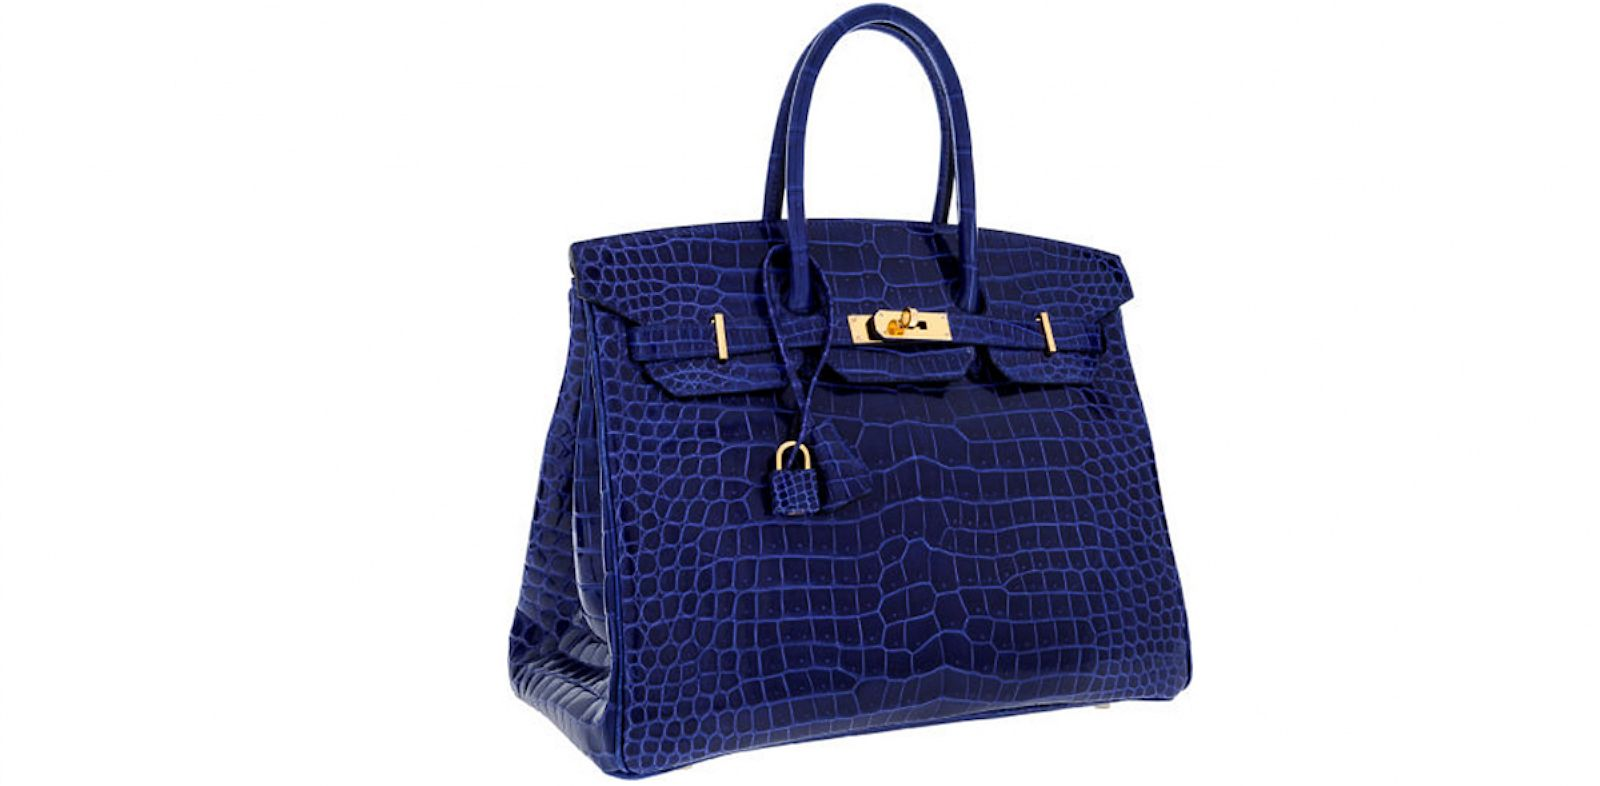 hermes purses - Women Enter Luxury Hermes, Chanel Handbags Collector\u0026#39;s Market In ...